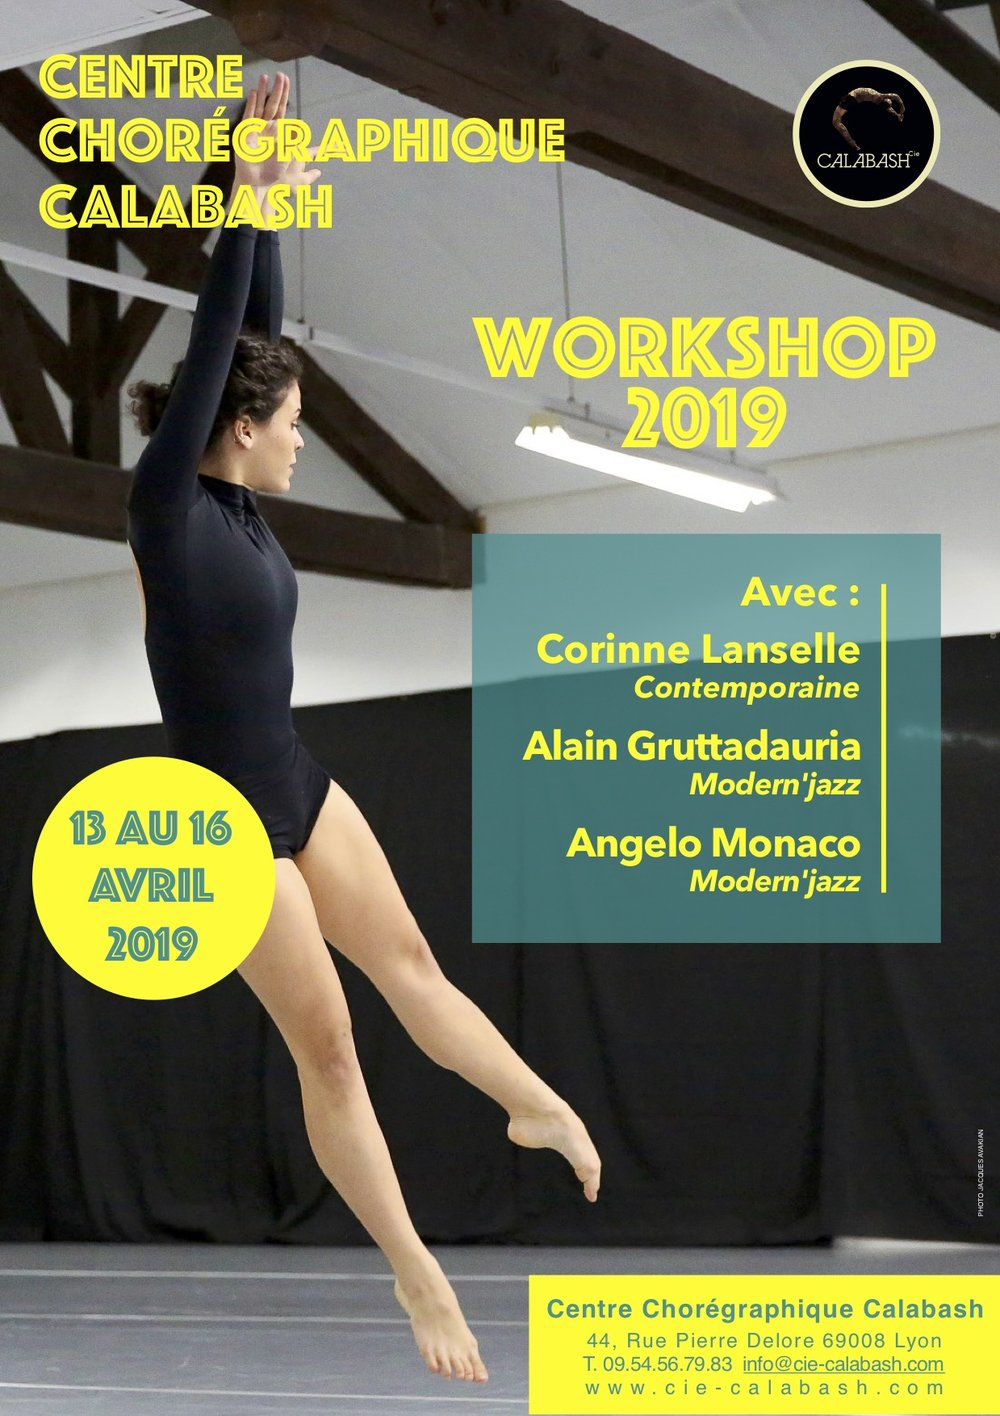 WORKSHOP 2019.jpg